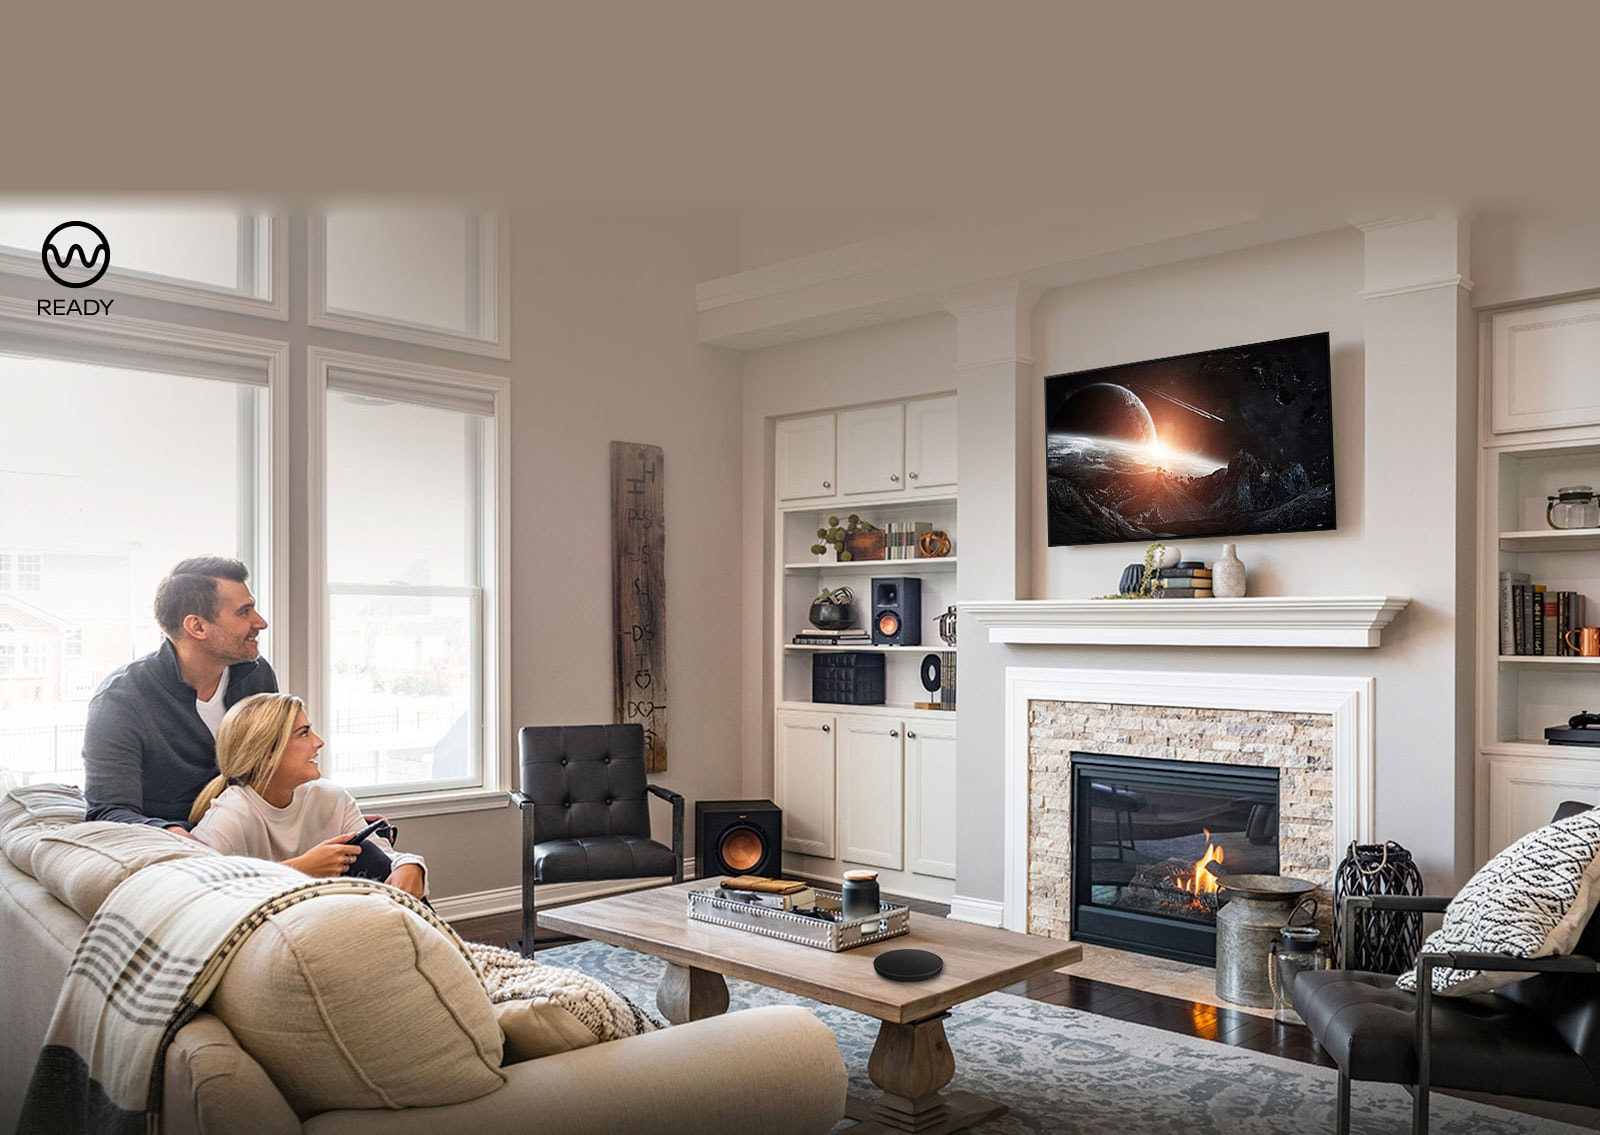 LG NanoCell TVs and WiSA™1